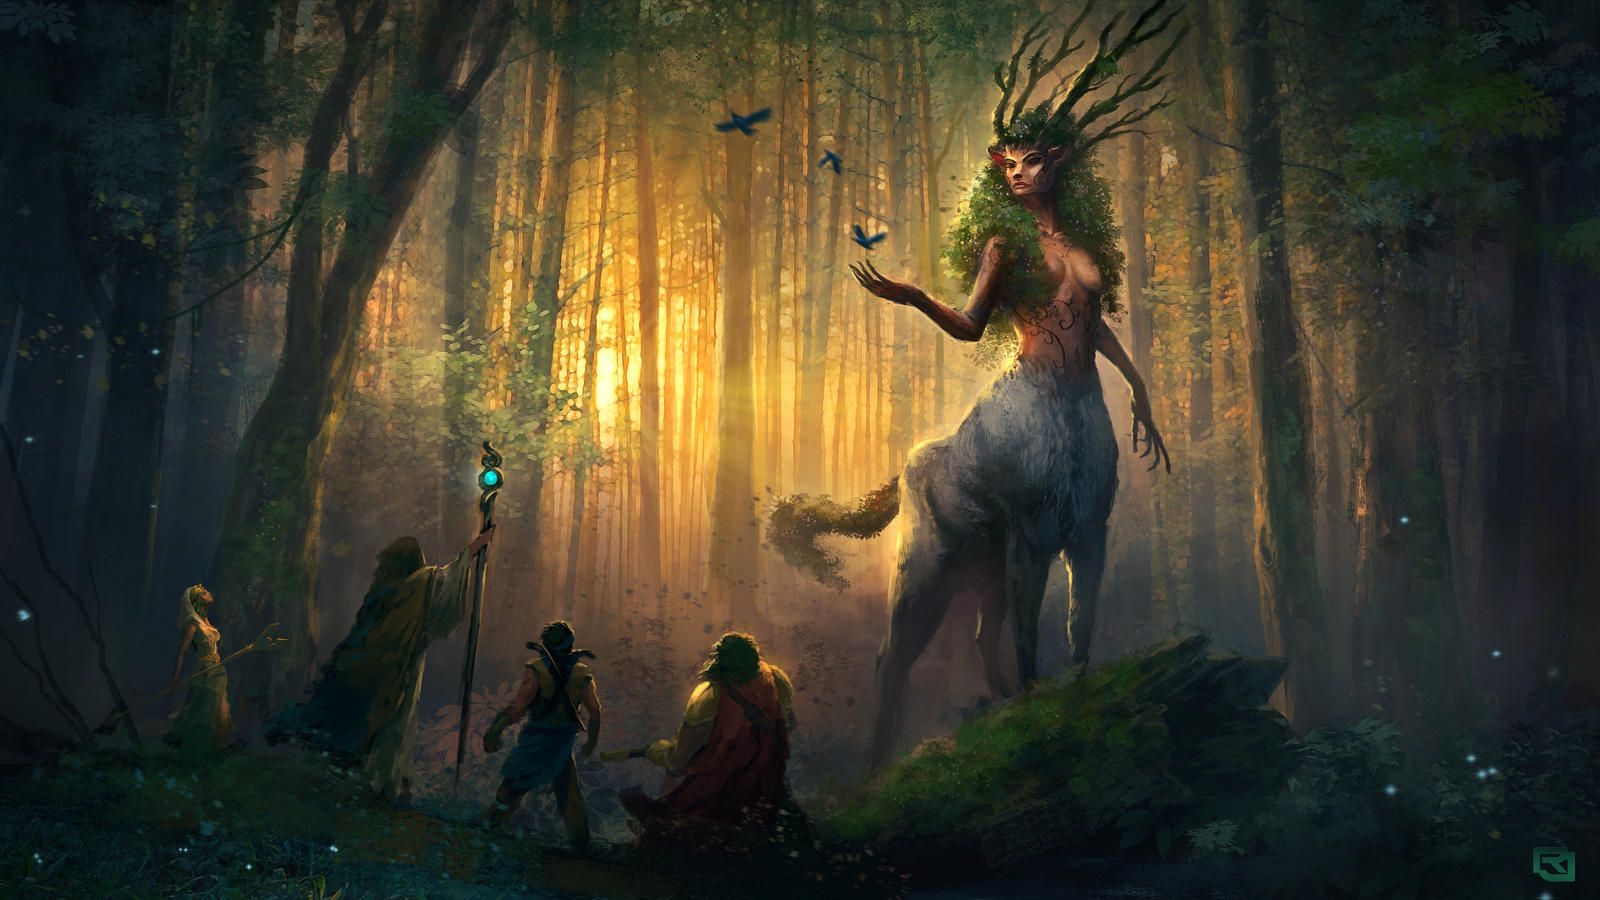 Spirit of The Forest by Rob-Joseph